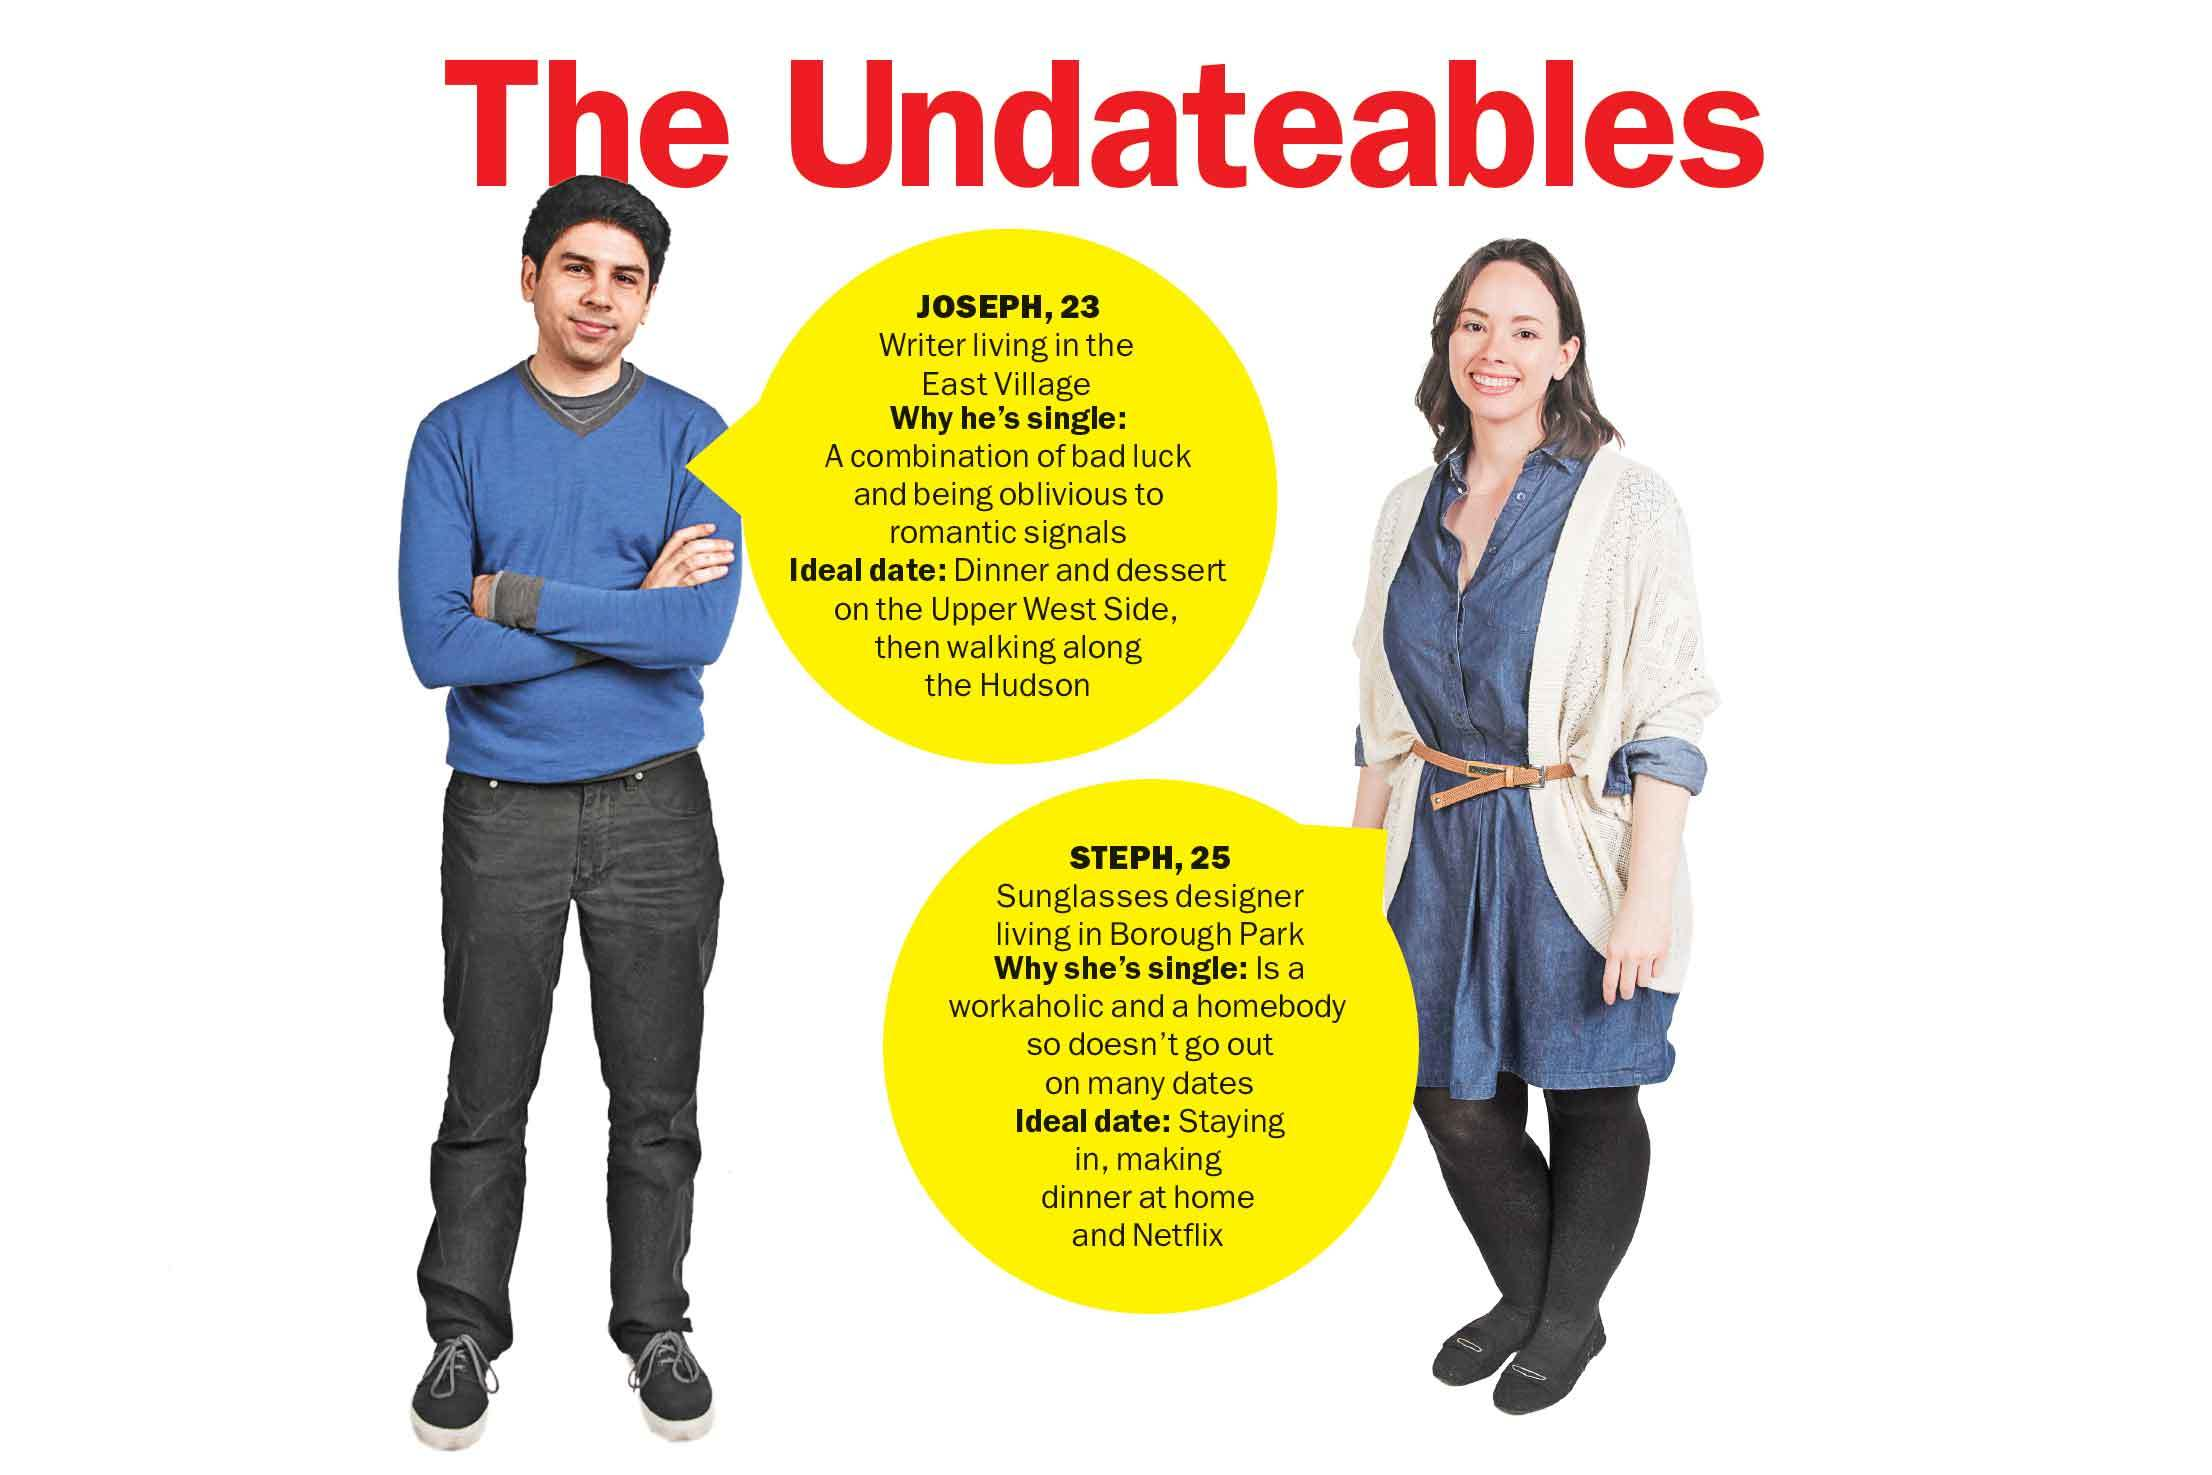 Meet The Undateables: Joseph and Steph